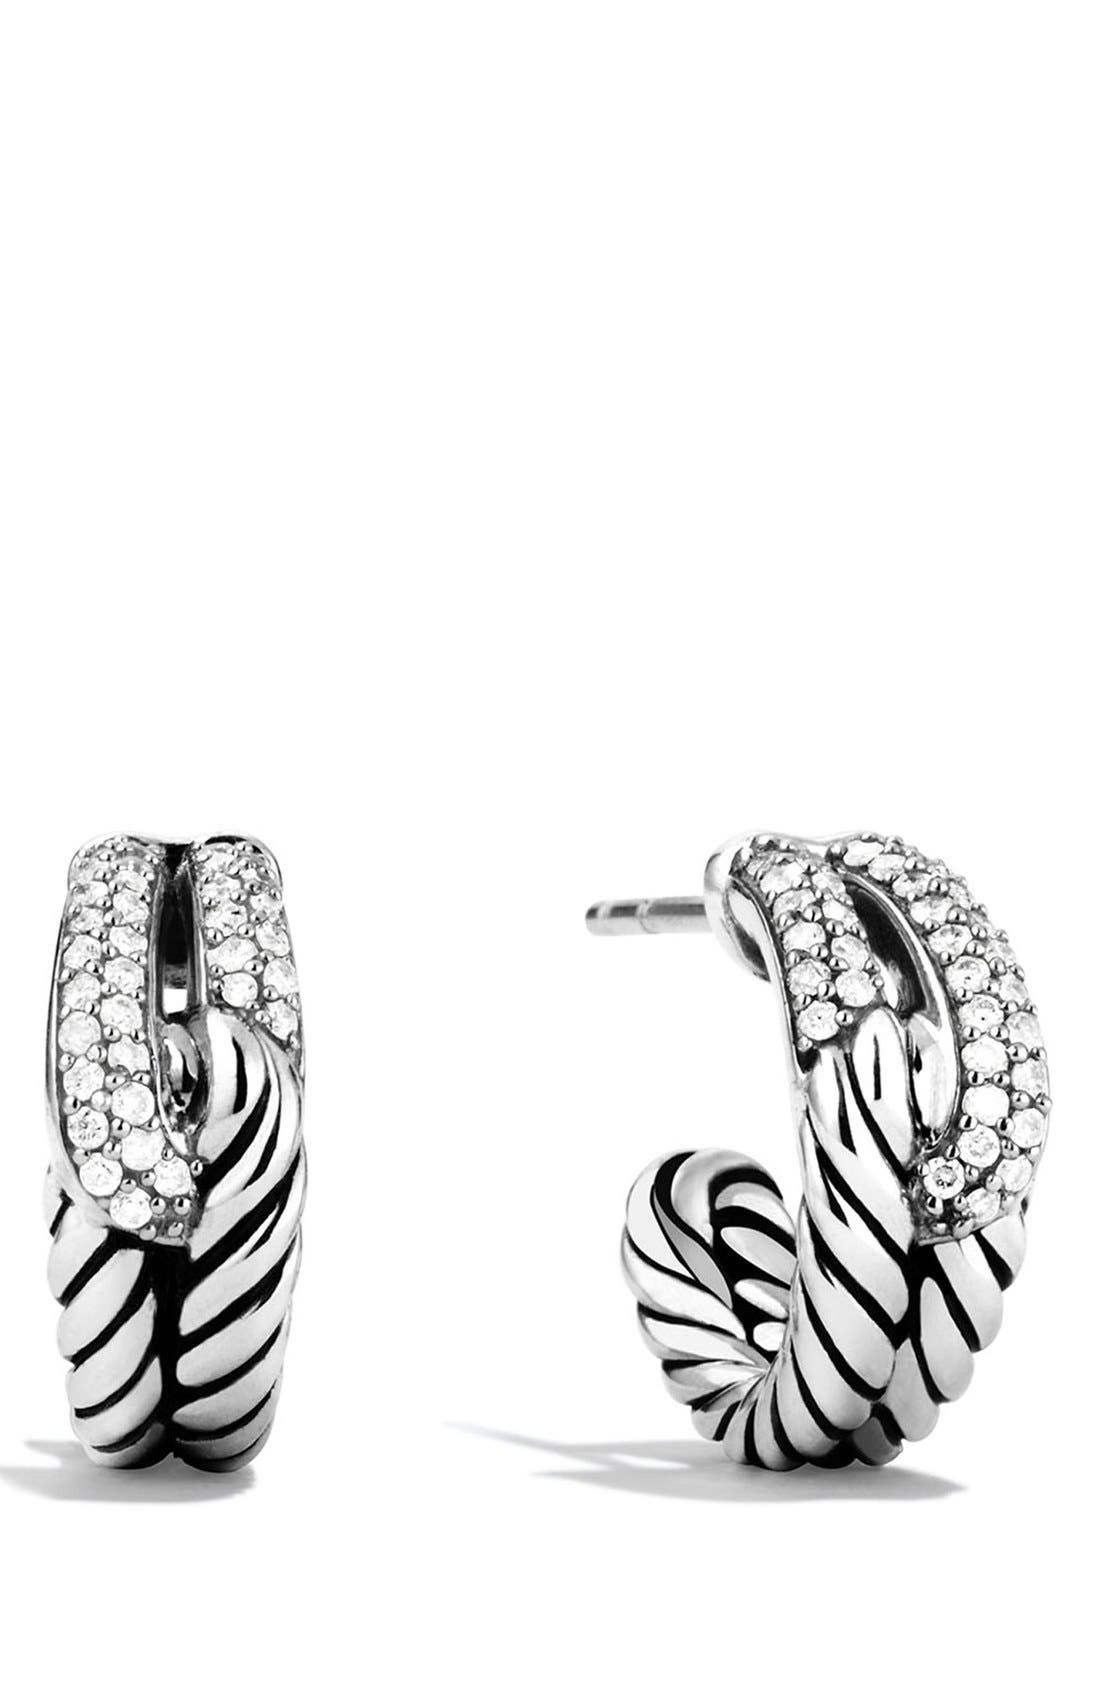 Alternate Image 1 Selected - David Yurman 'Labyrinth' Single Loop Earrings with Diamonds